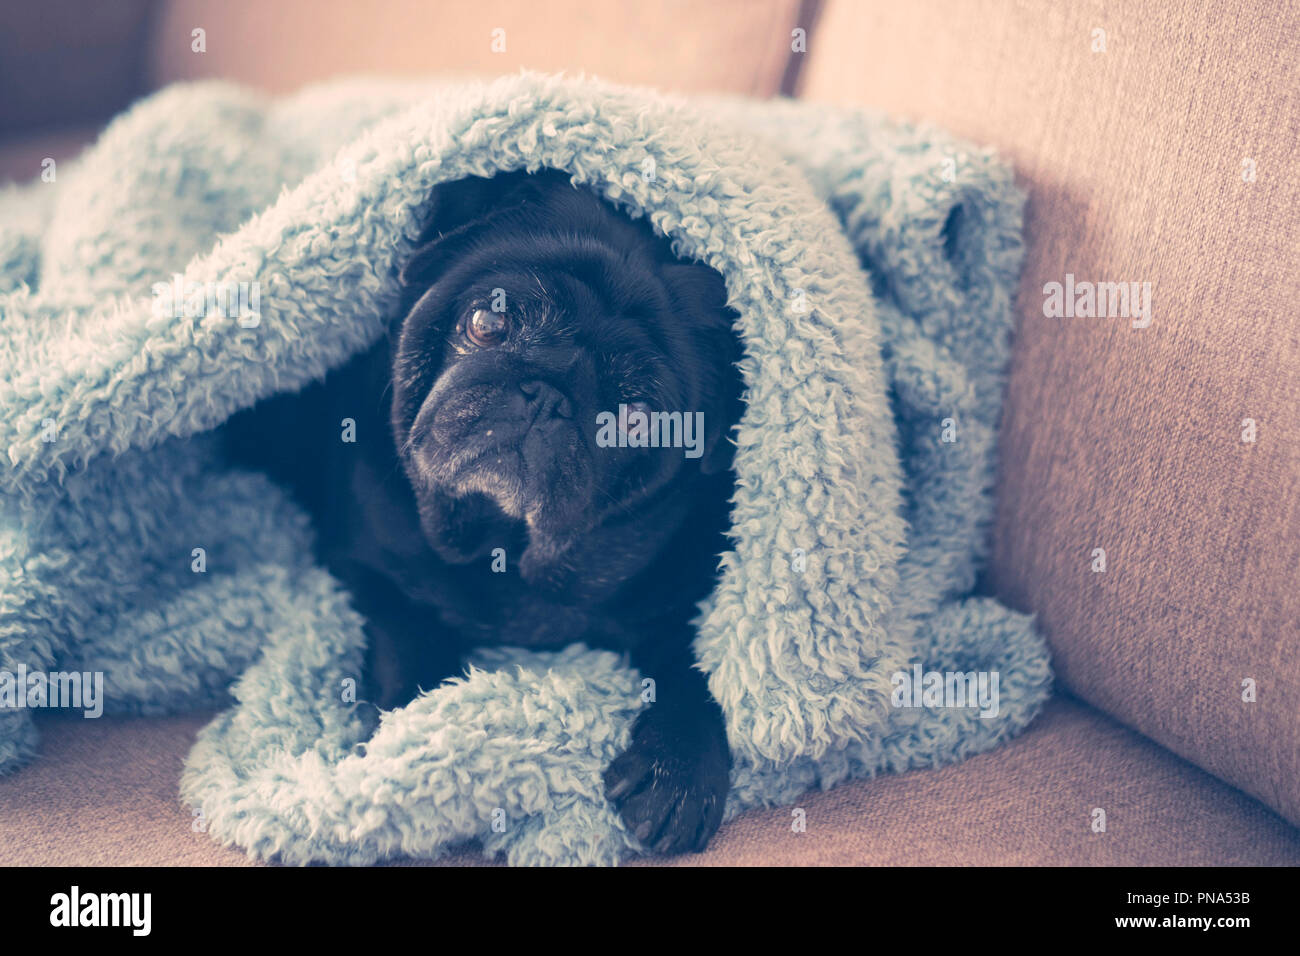 nice old pug under the sheet at home. sweet and nice to protect your home. beautiful colors blue and cyan. Rapper mood image. tenderness and sweetness - Stock Image